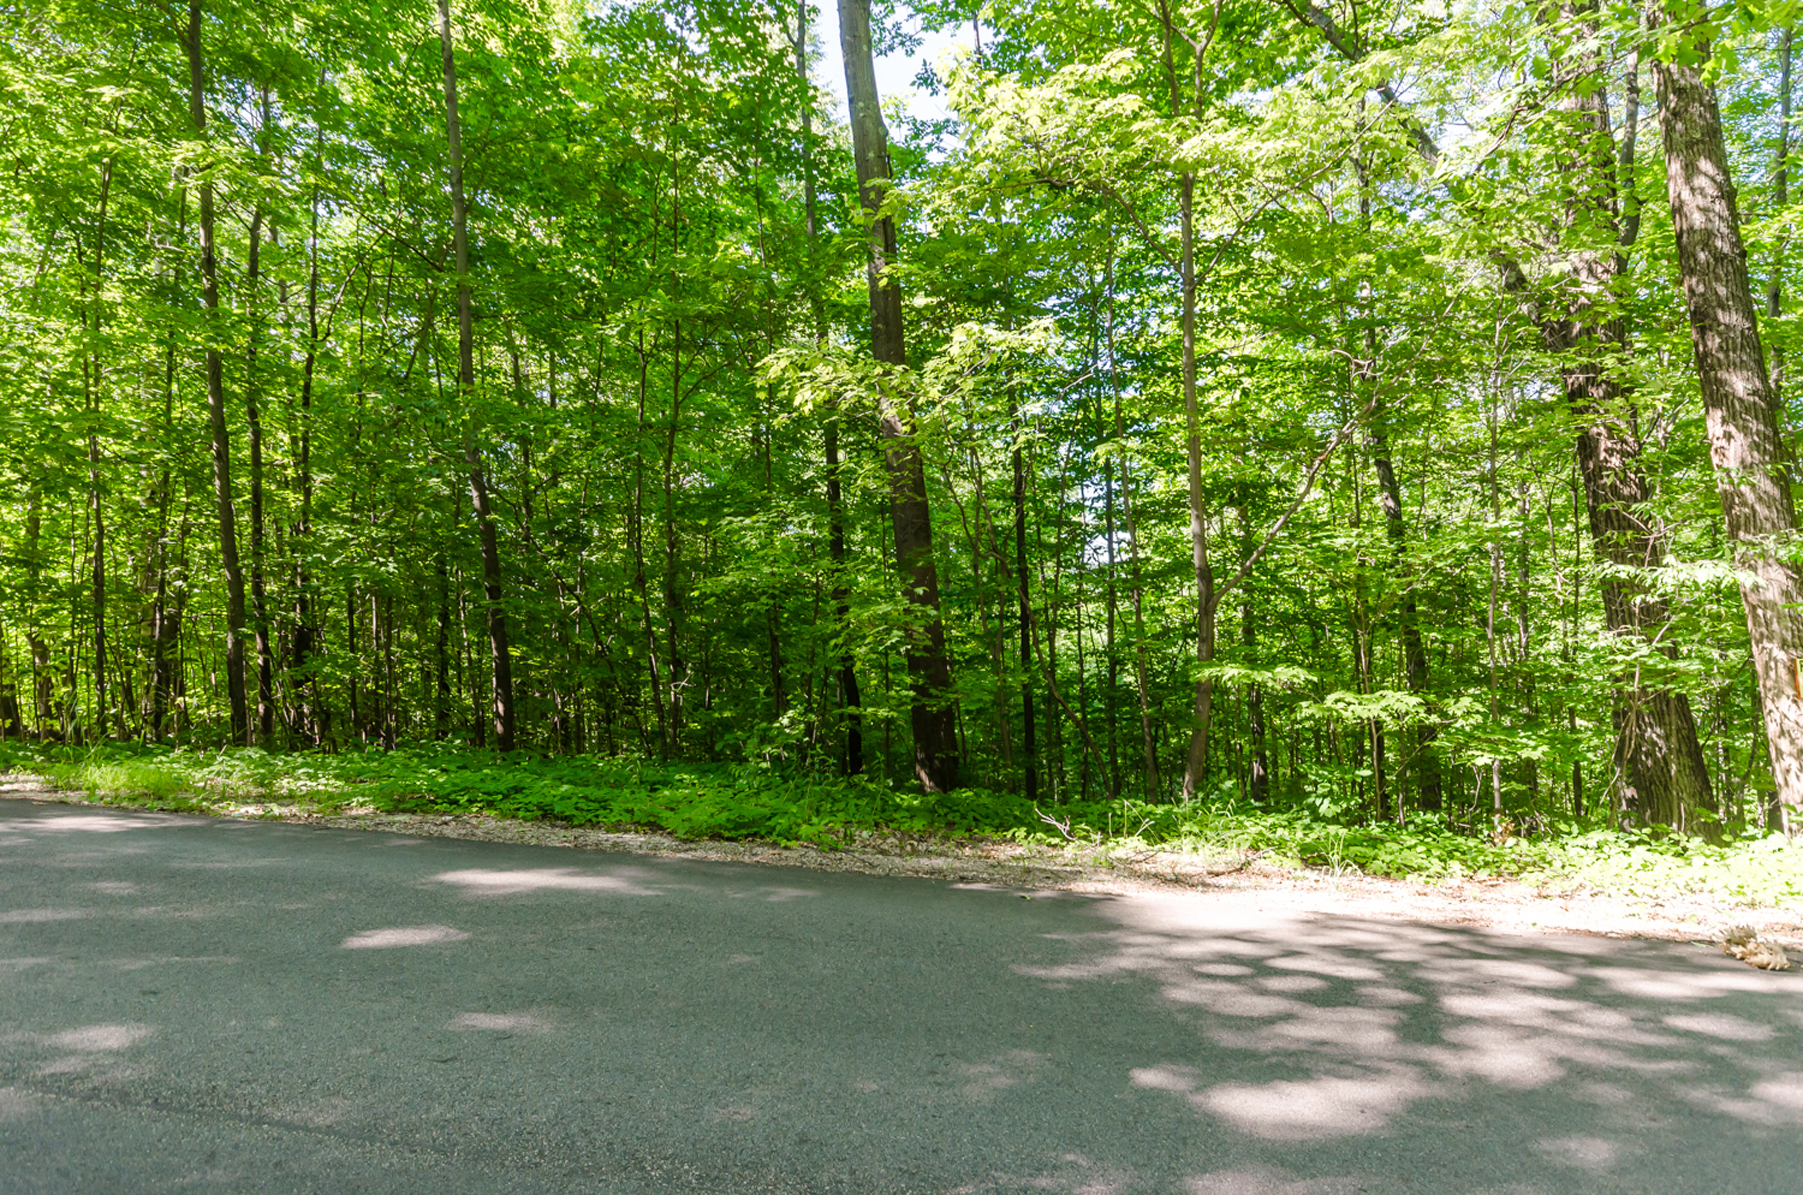 Land for Sale at Lot 20 Mountain Road, Francestown Lot 20 Mountain Rd Francestown, New Hampshire, 03043 United States